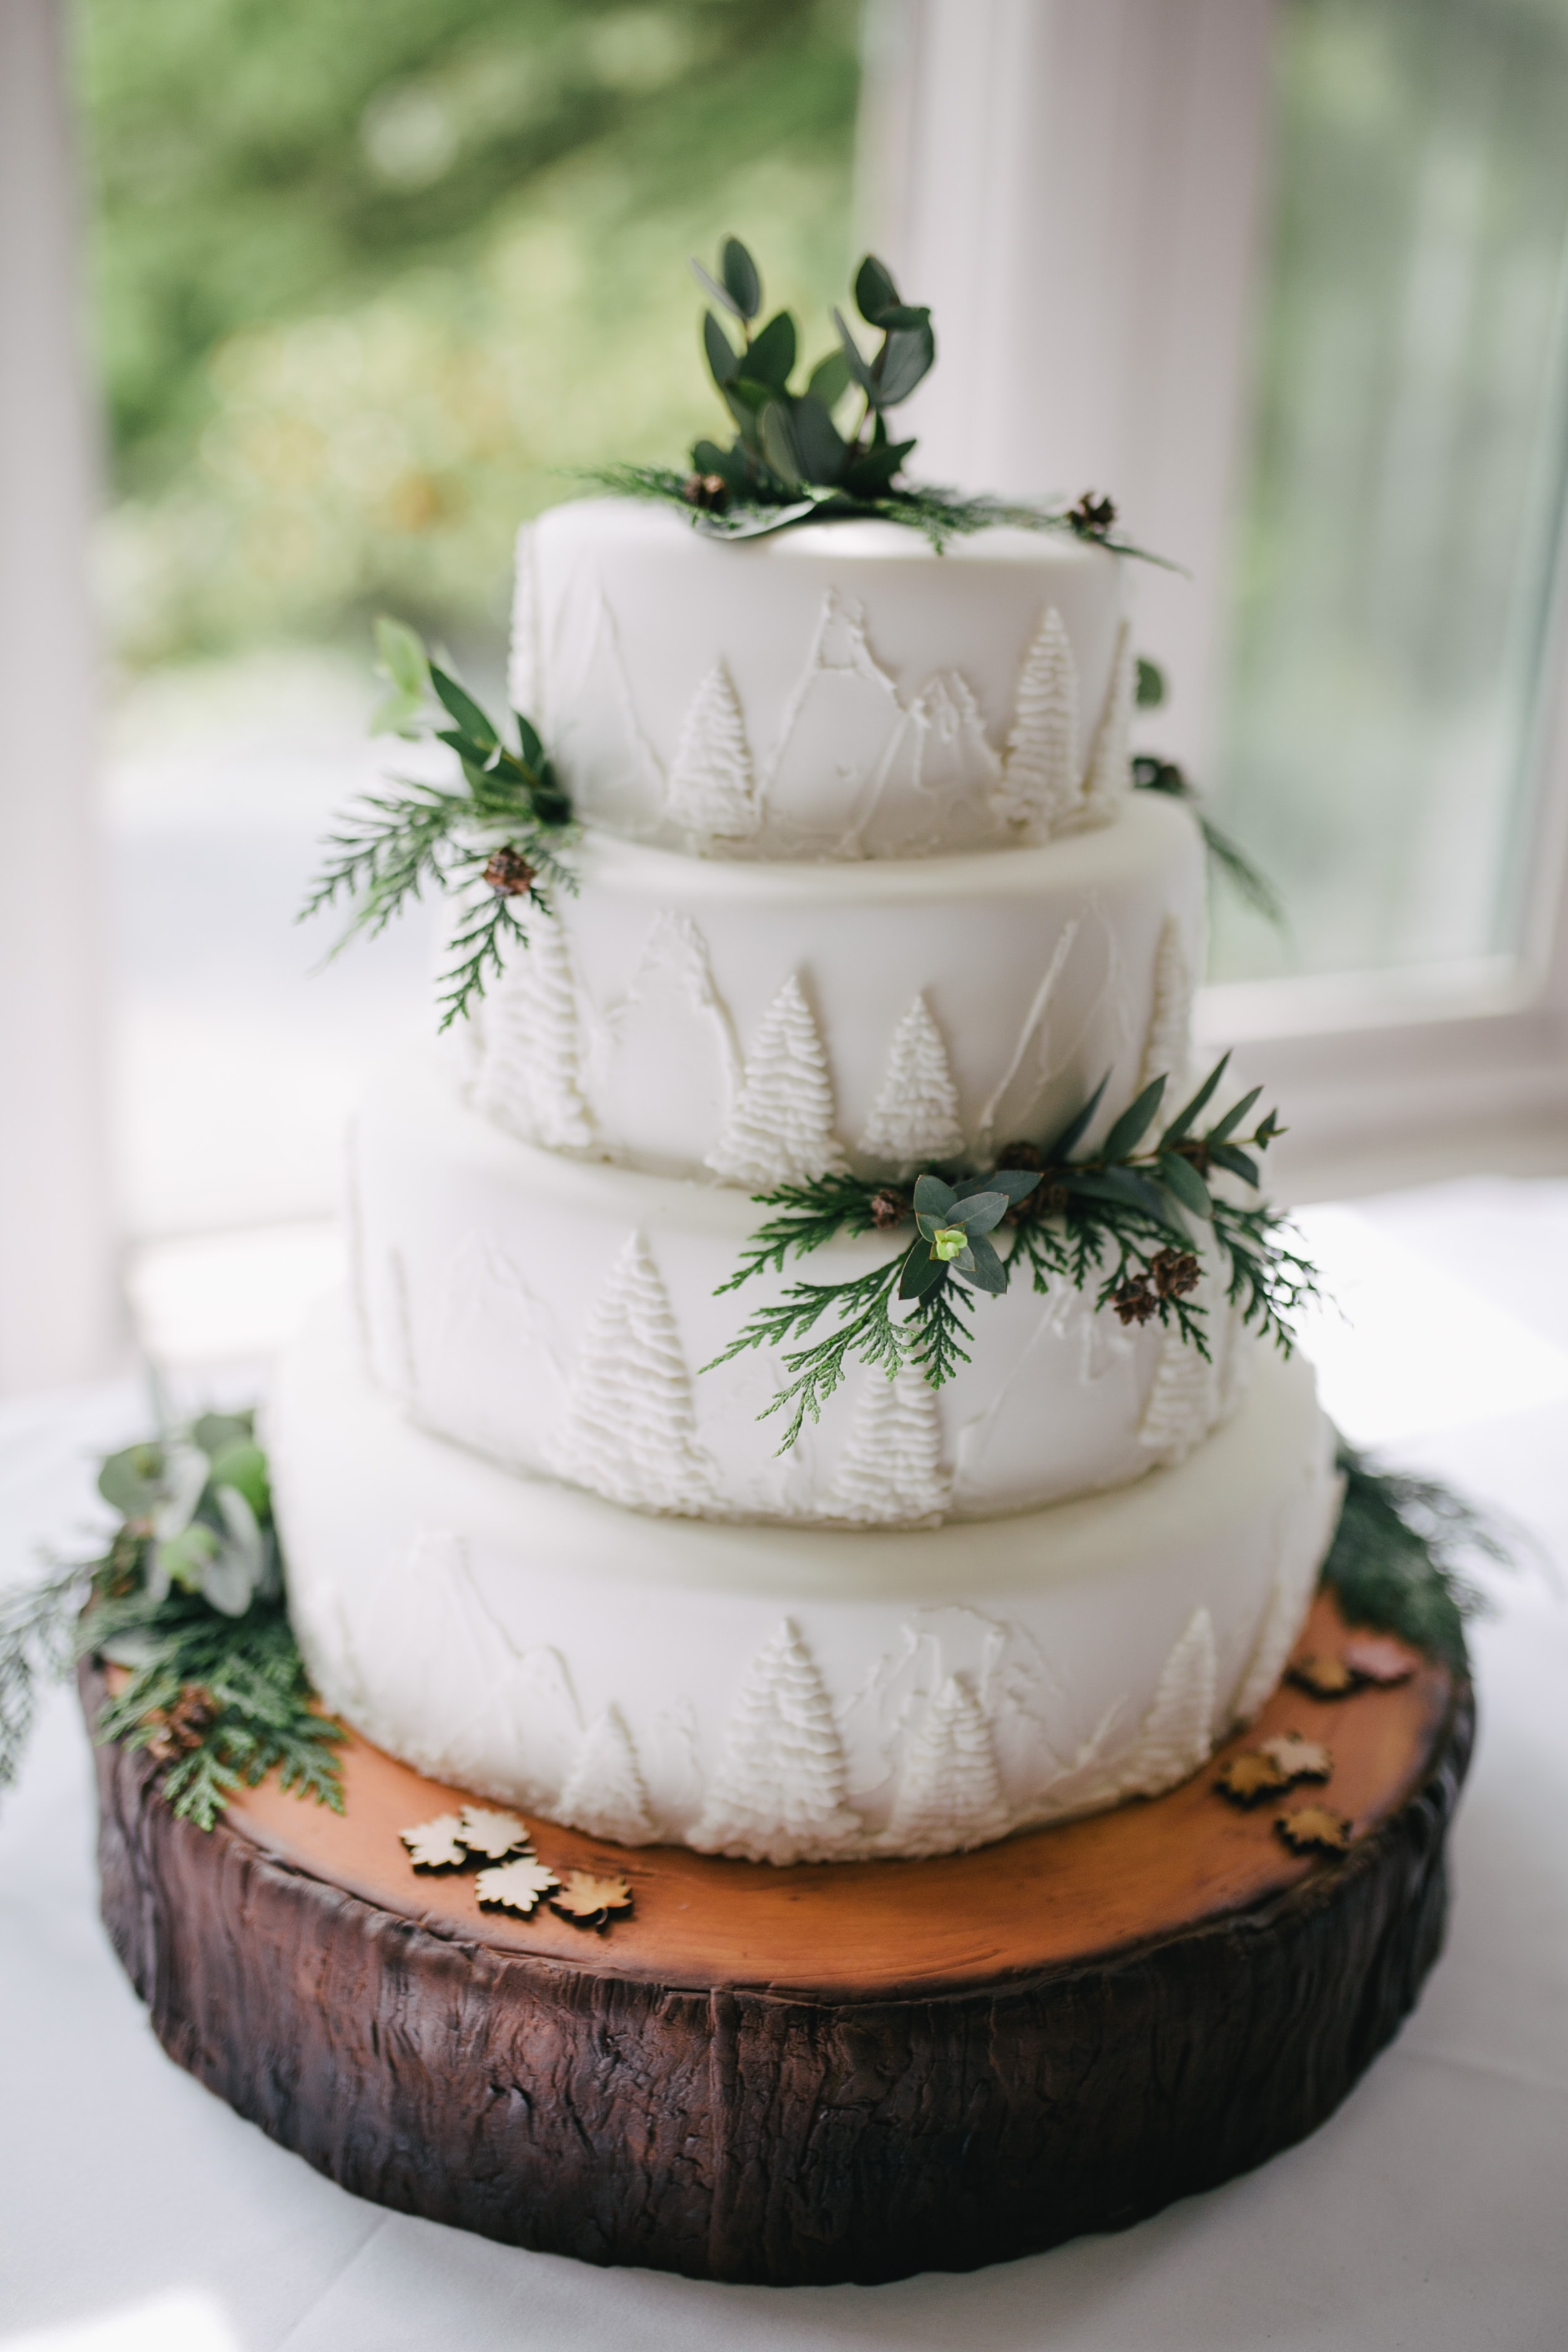 focus photo of white icing-covered 4-tier cake